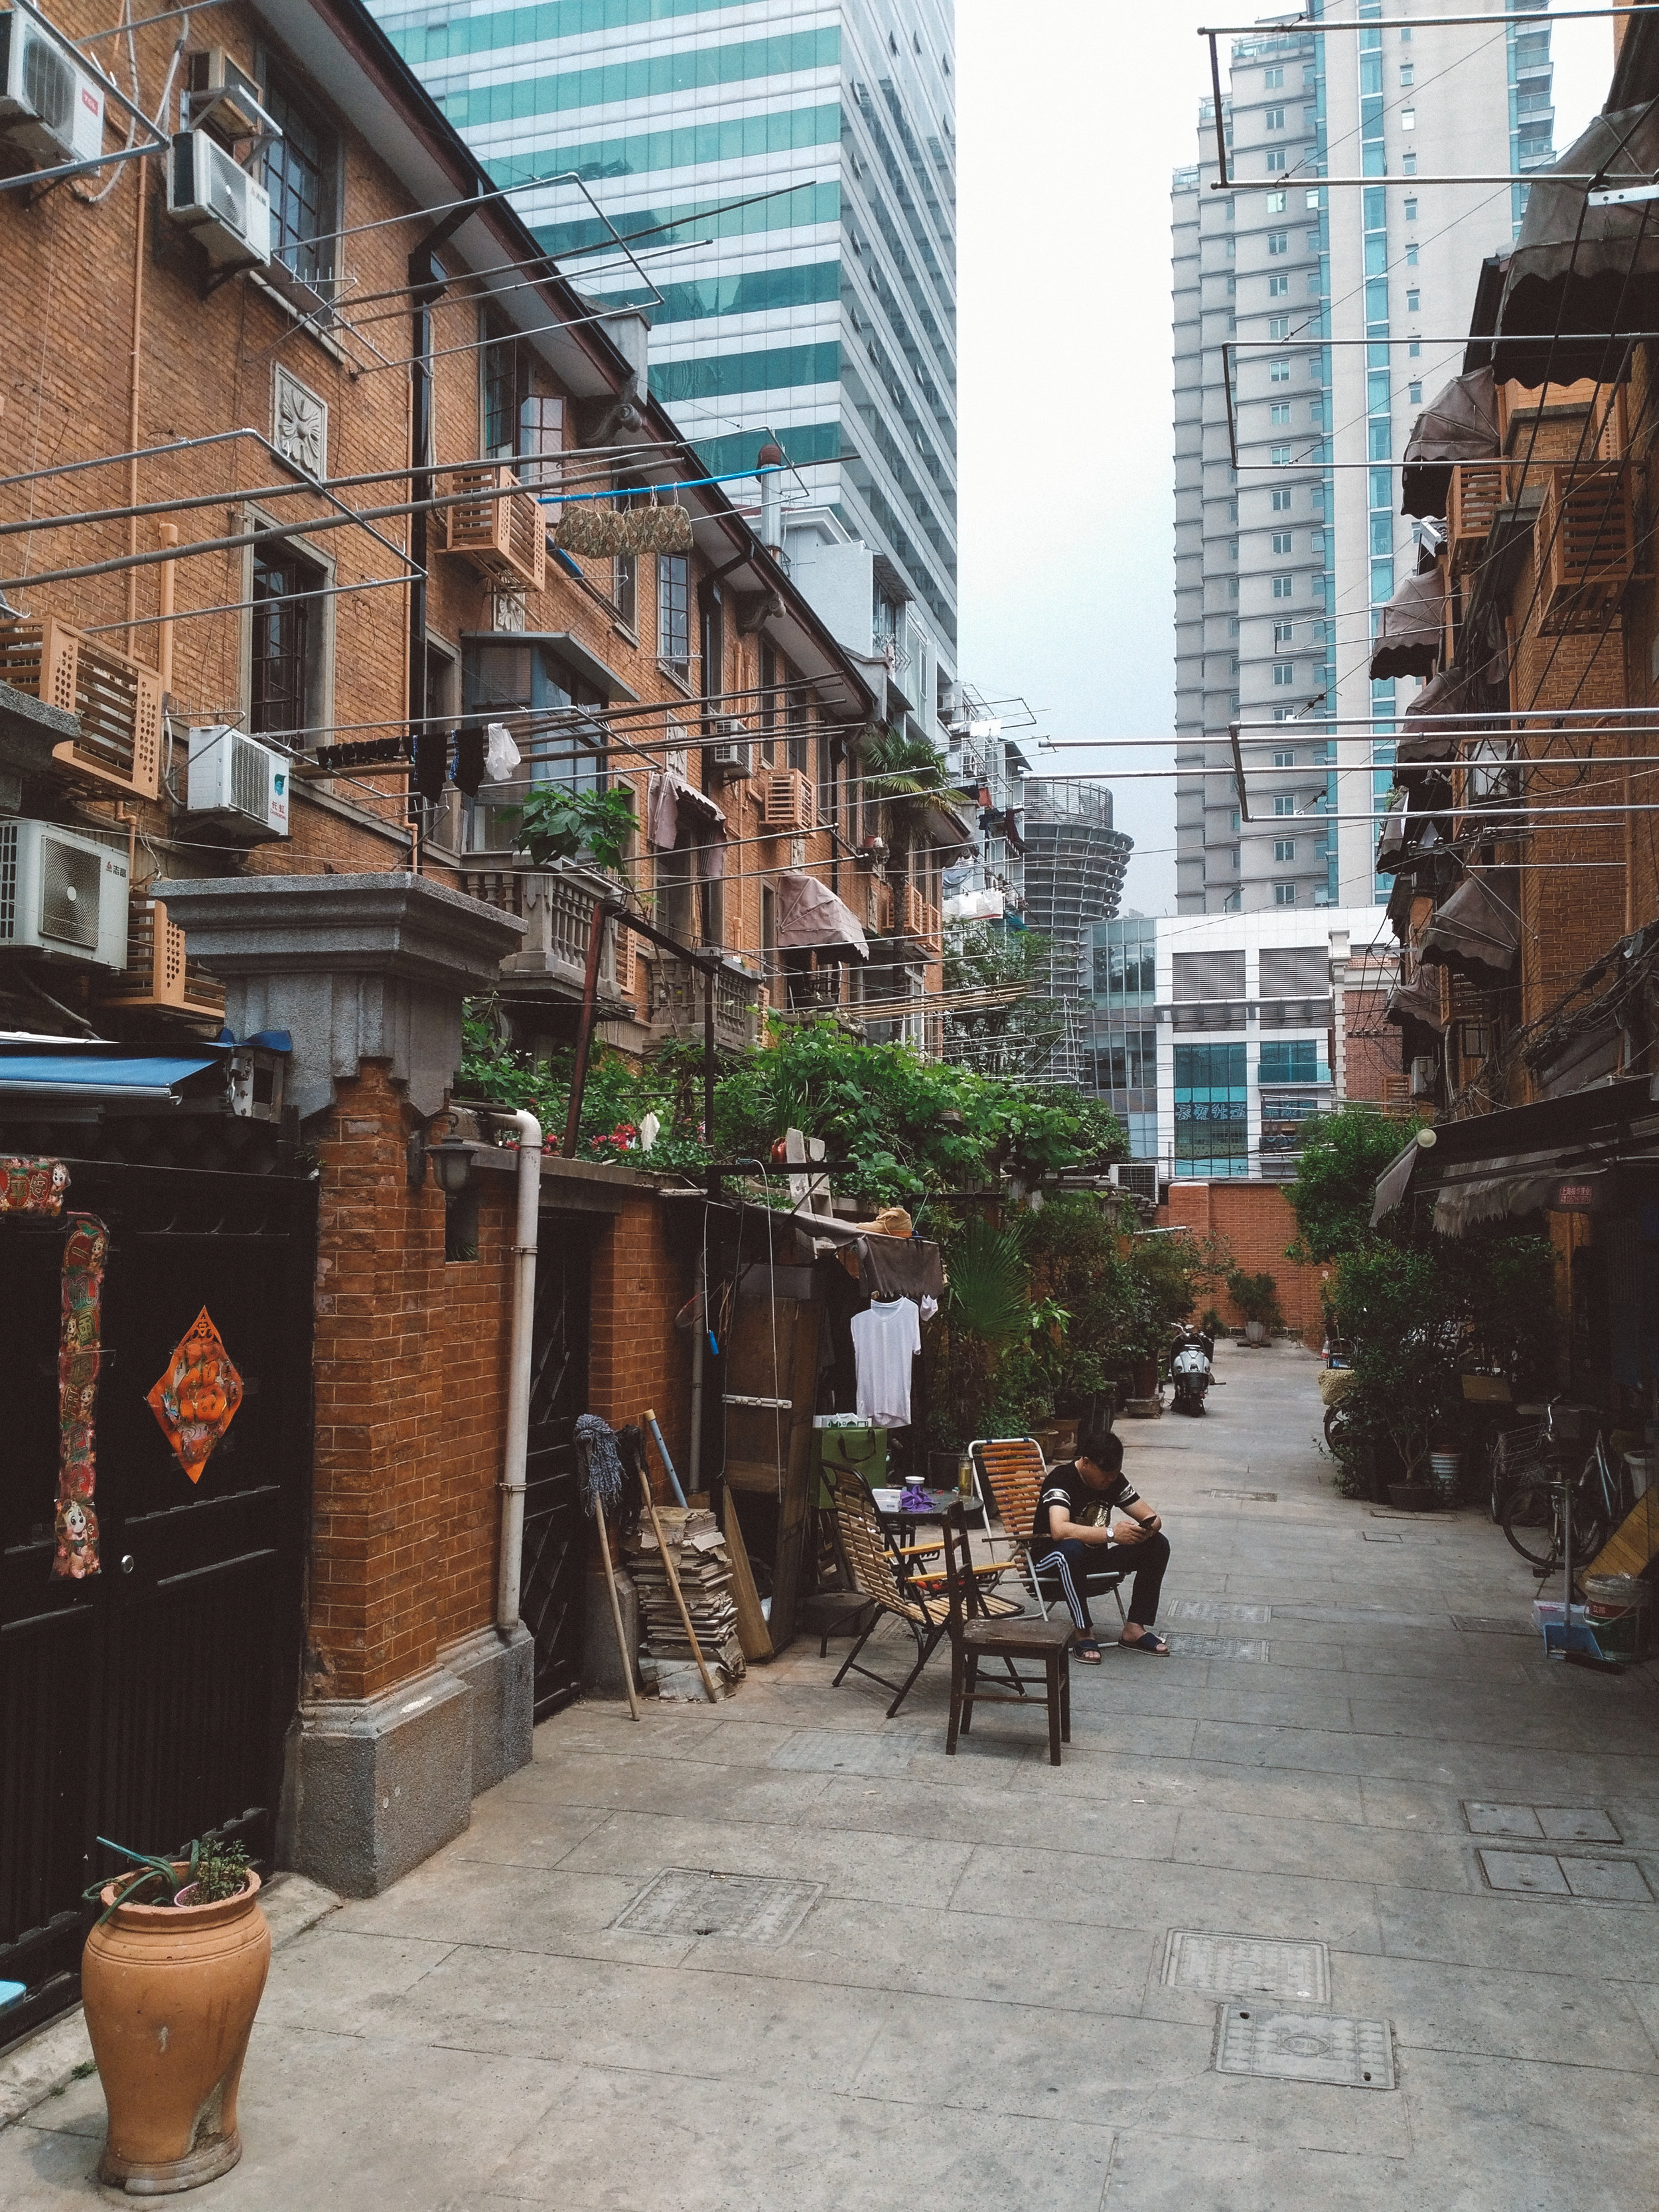 The French Consession; - with its refreshing and relaxed atmosphere, it's my favorite part of Shanghai .